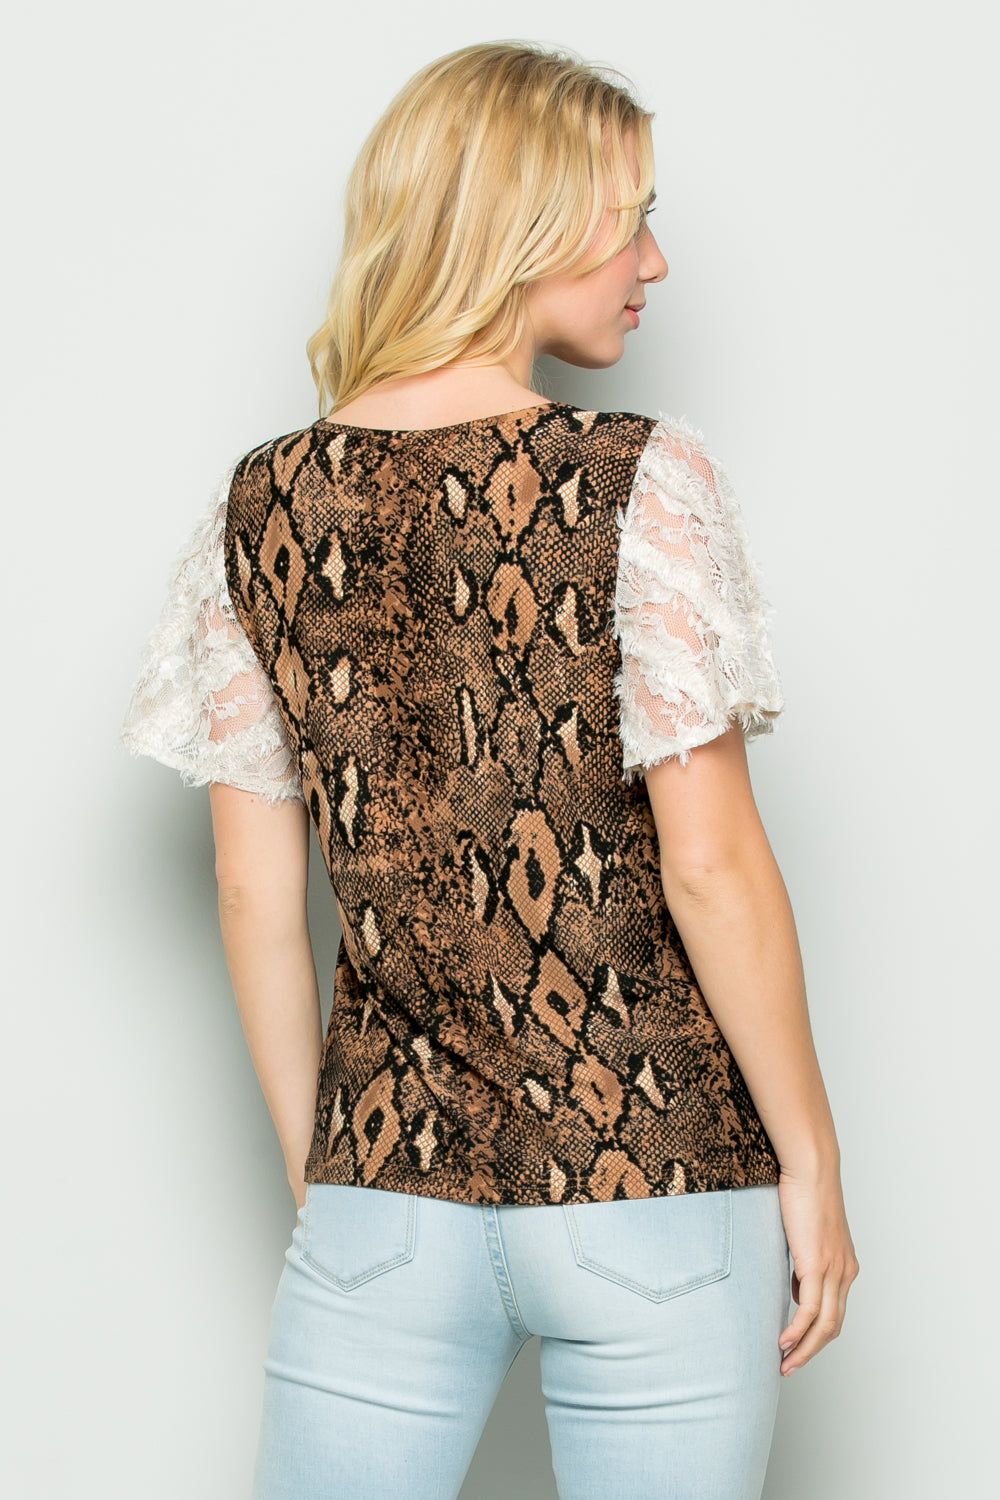 T3031 Lace Sleeve Animal Print Knit Top - Brown